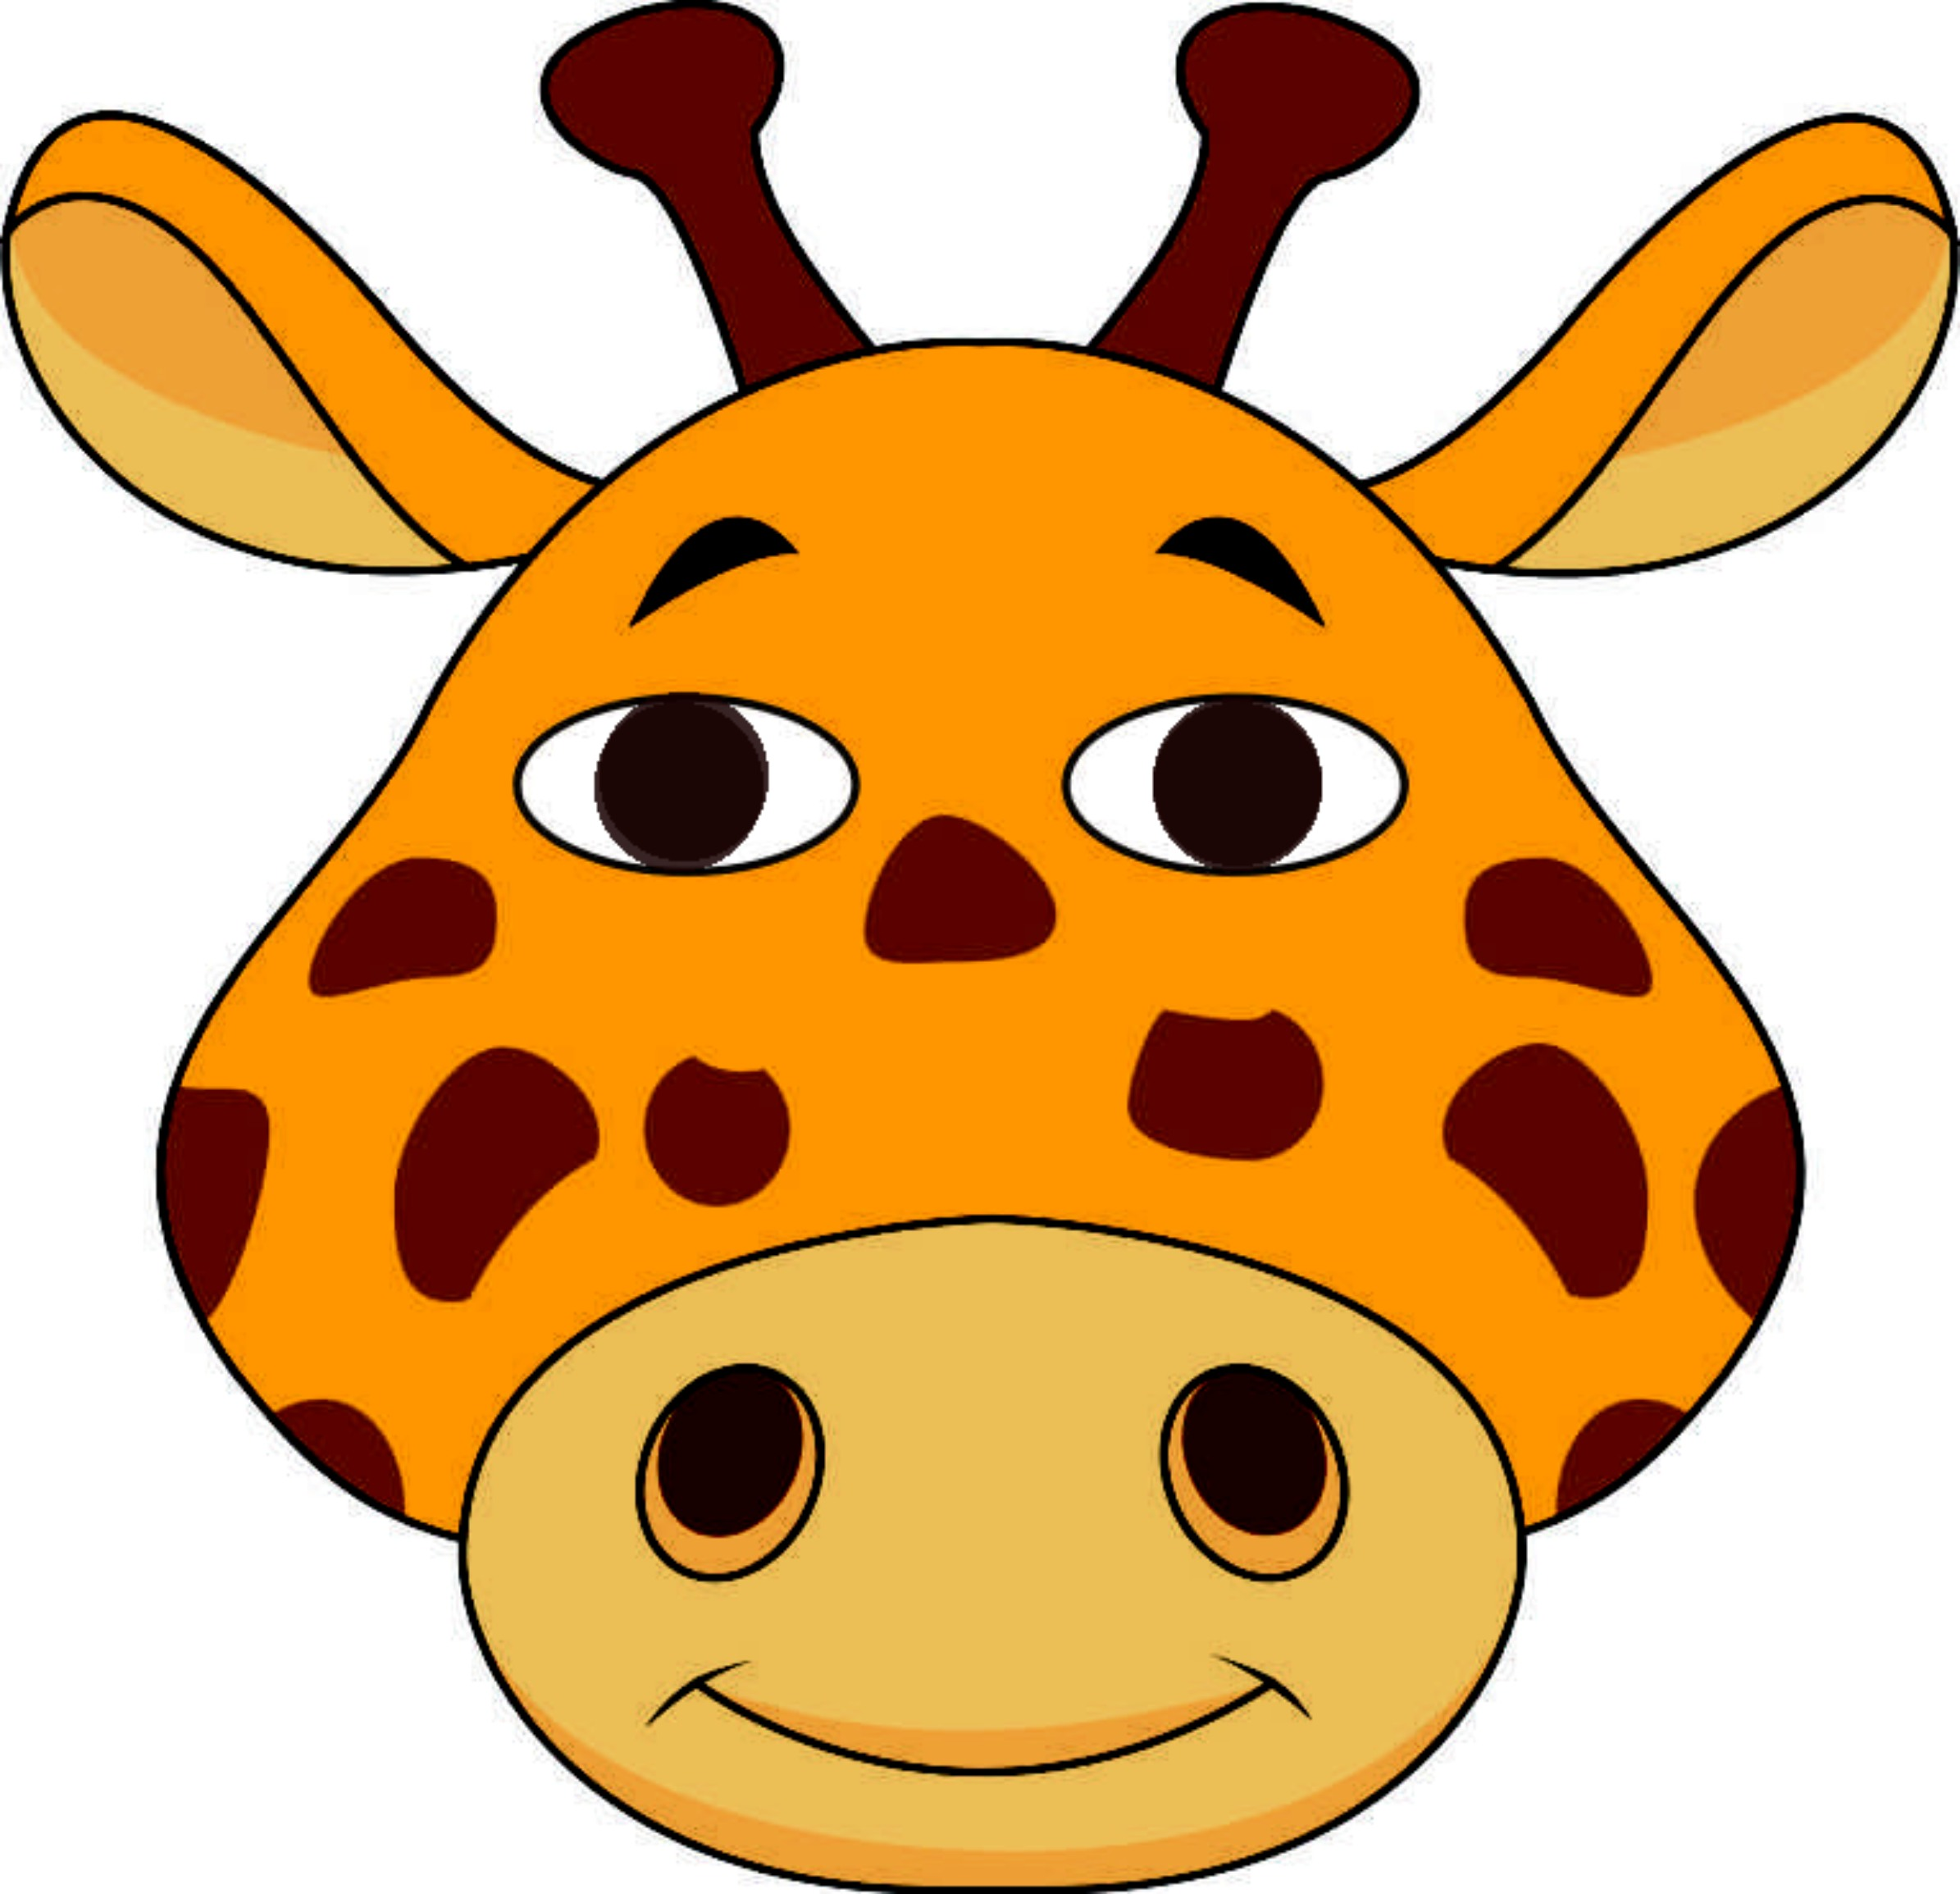 2390x2309 Animal Mask Giraffe Kit Or Ready To Wear Great For Parties And Fun